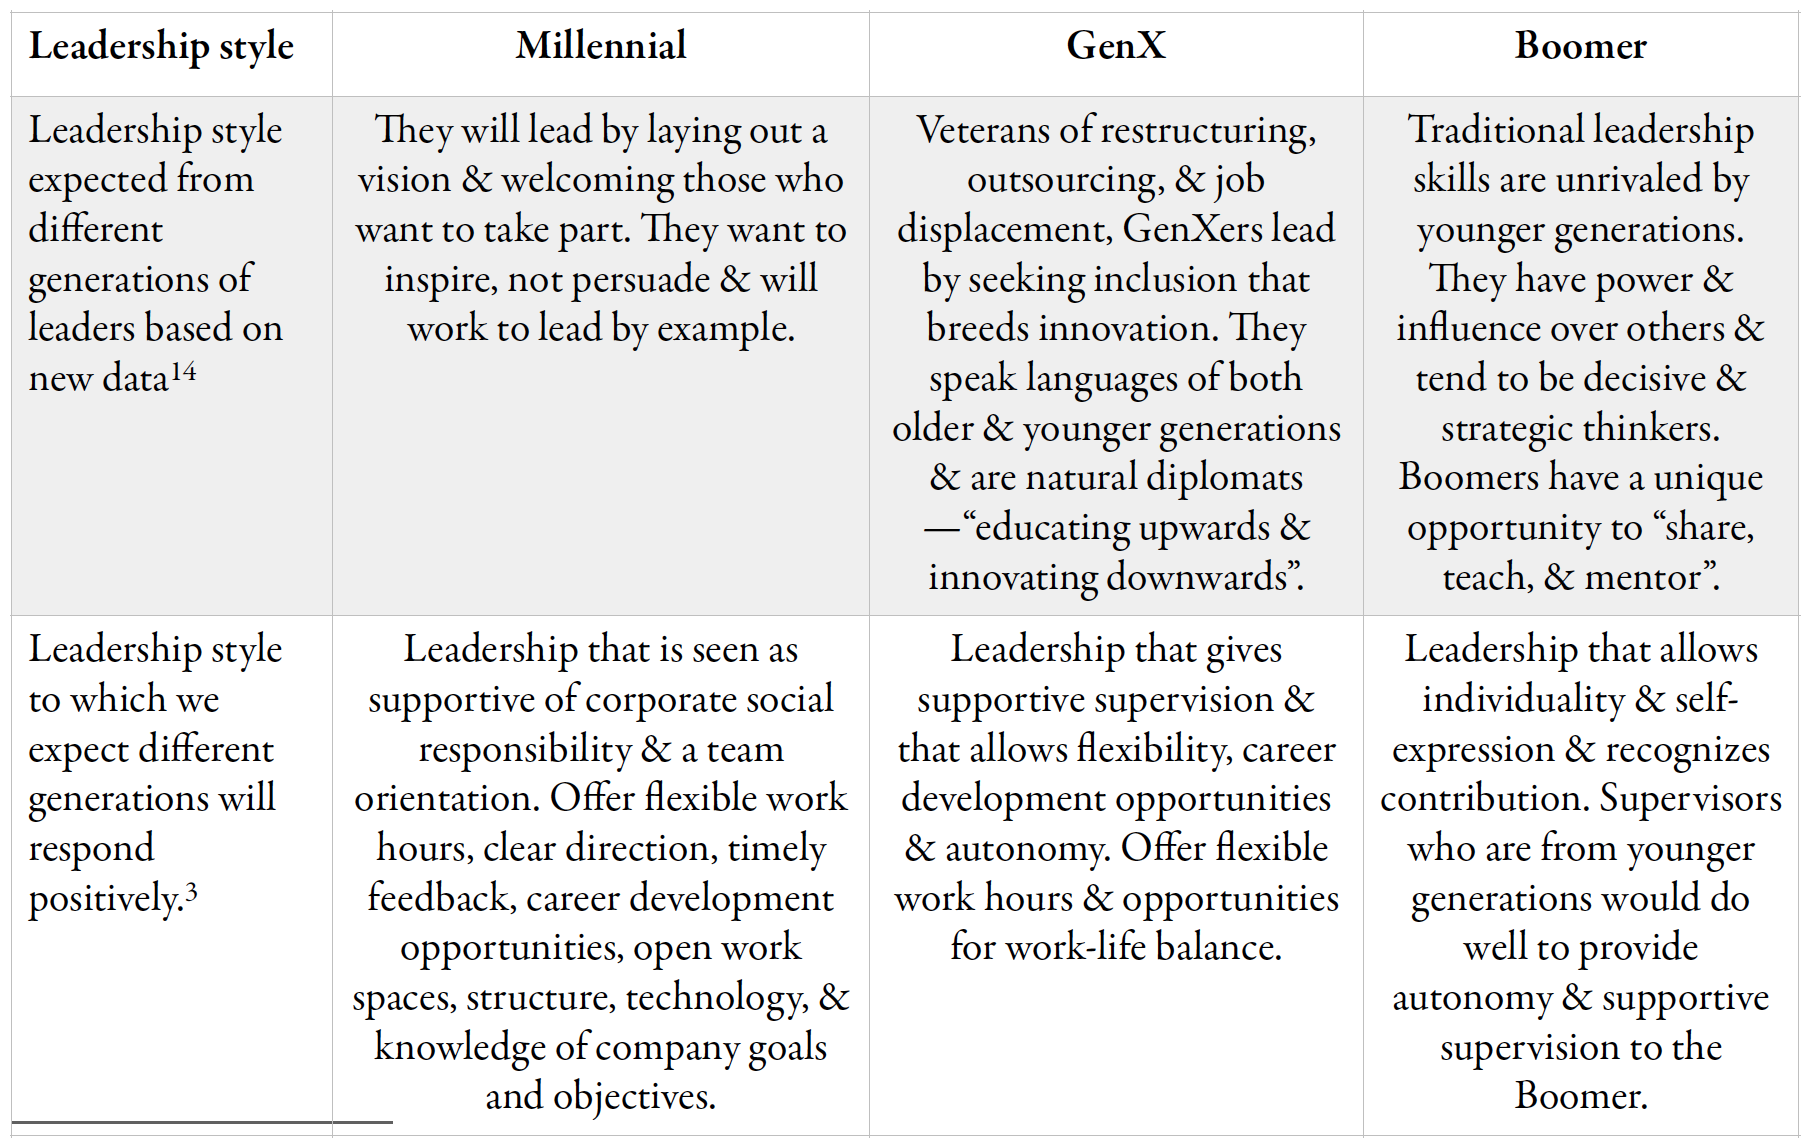 generational differences in personality and motivation Personality processes and individual differences generational differences in young adults' life goals, concern for others, and civic orientation, 1966–2009.